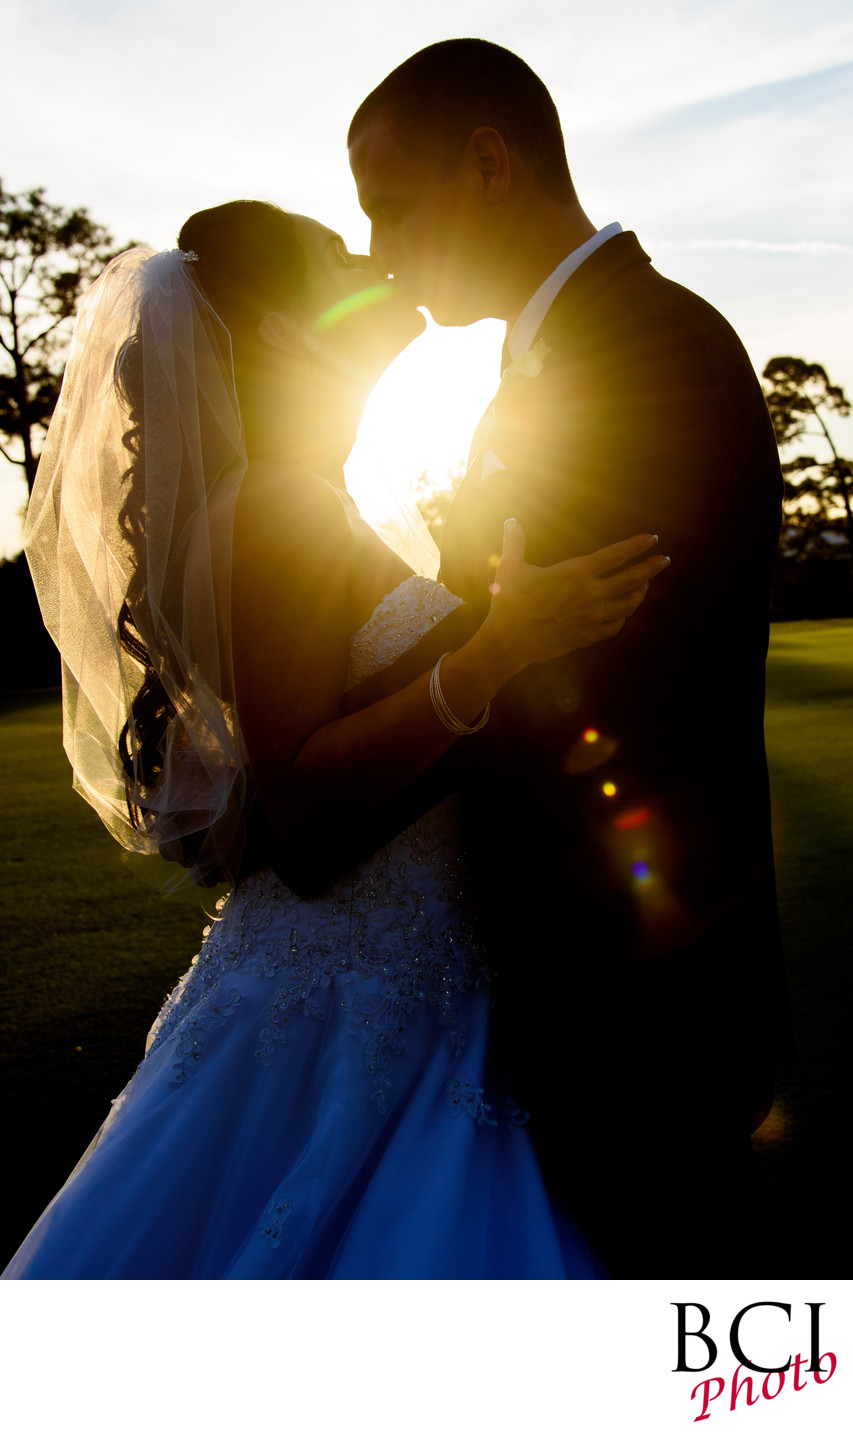 Great sunset wedding pictures from local weddings